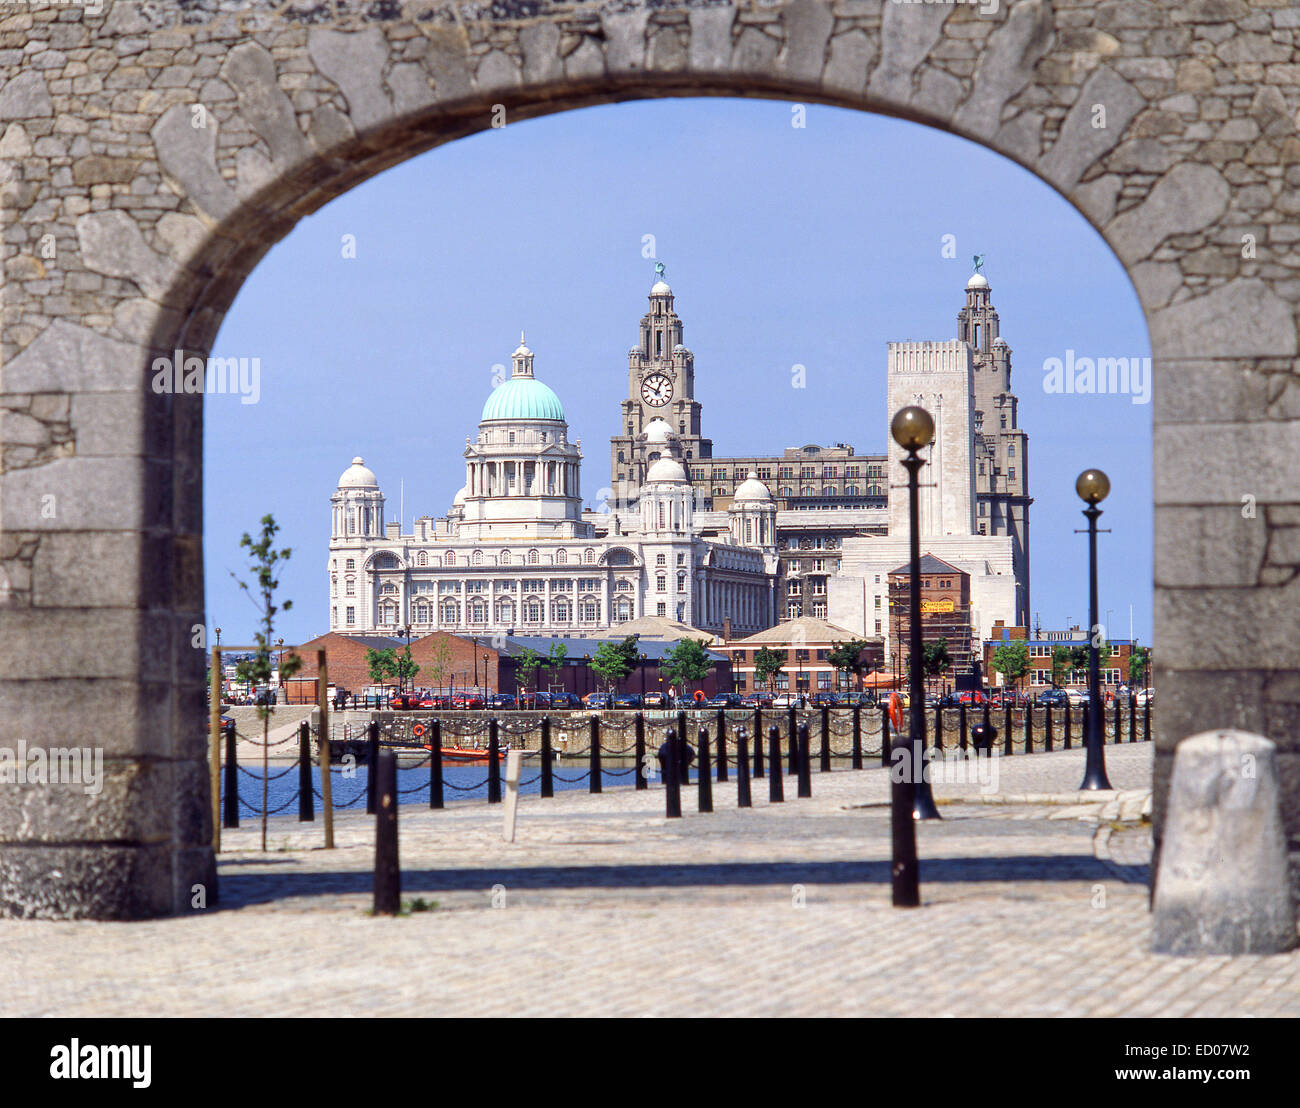 Liverpool's Three Graces from Albert Docks, Liverpool, Merseyside, England, United Kingdom - Stock Image